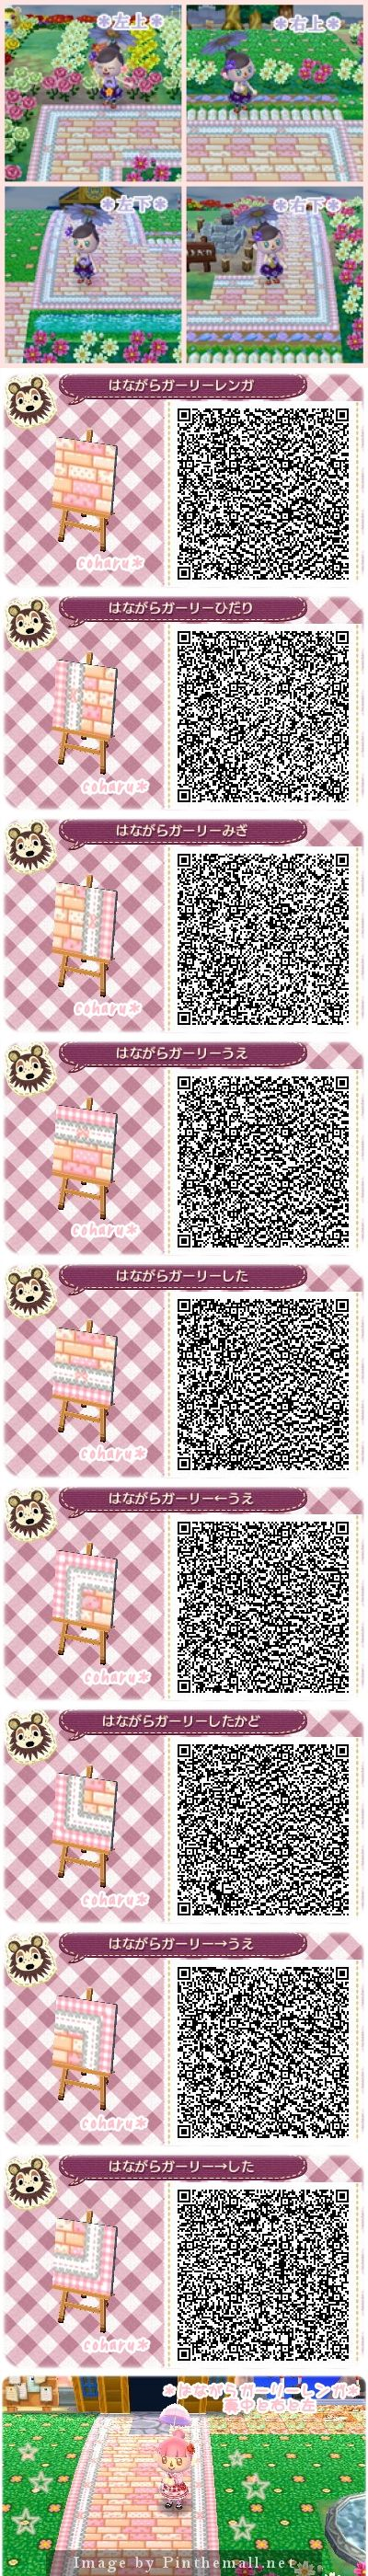 319 Best Images About Outfits Qr Codes For Animal Crossing